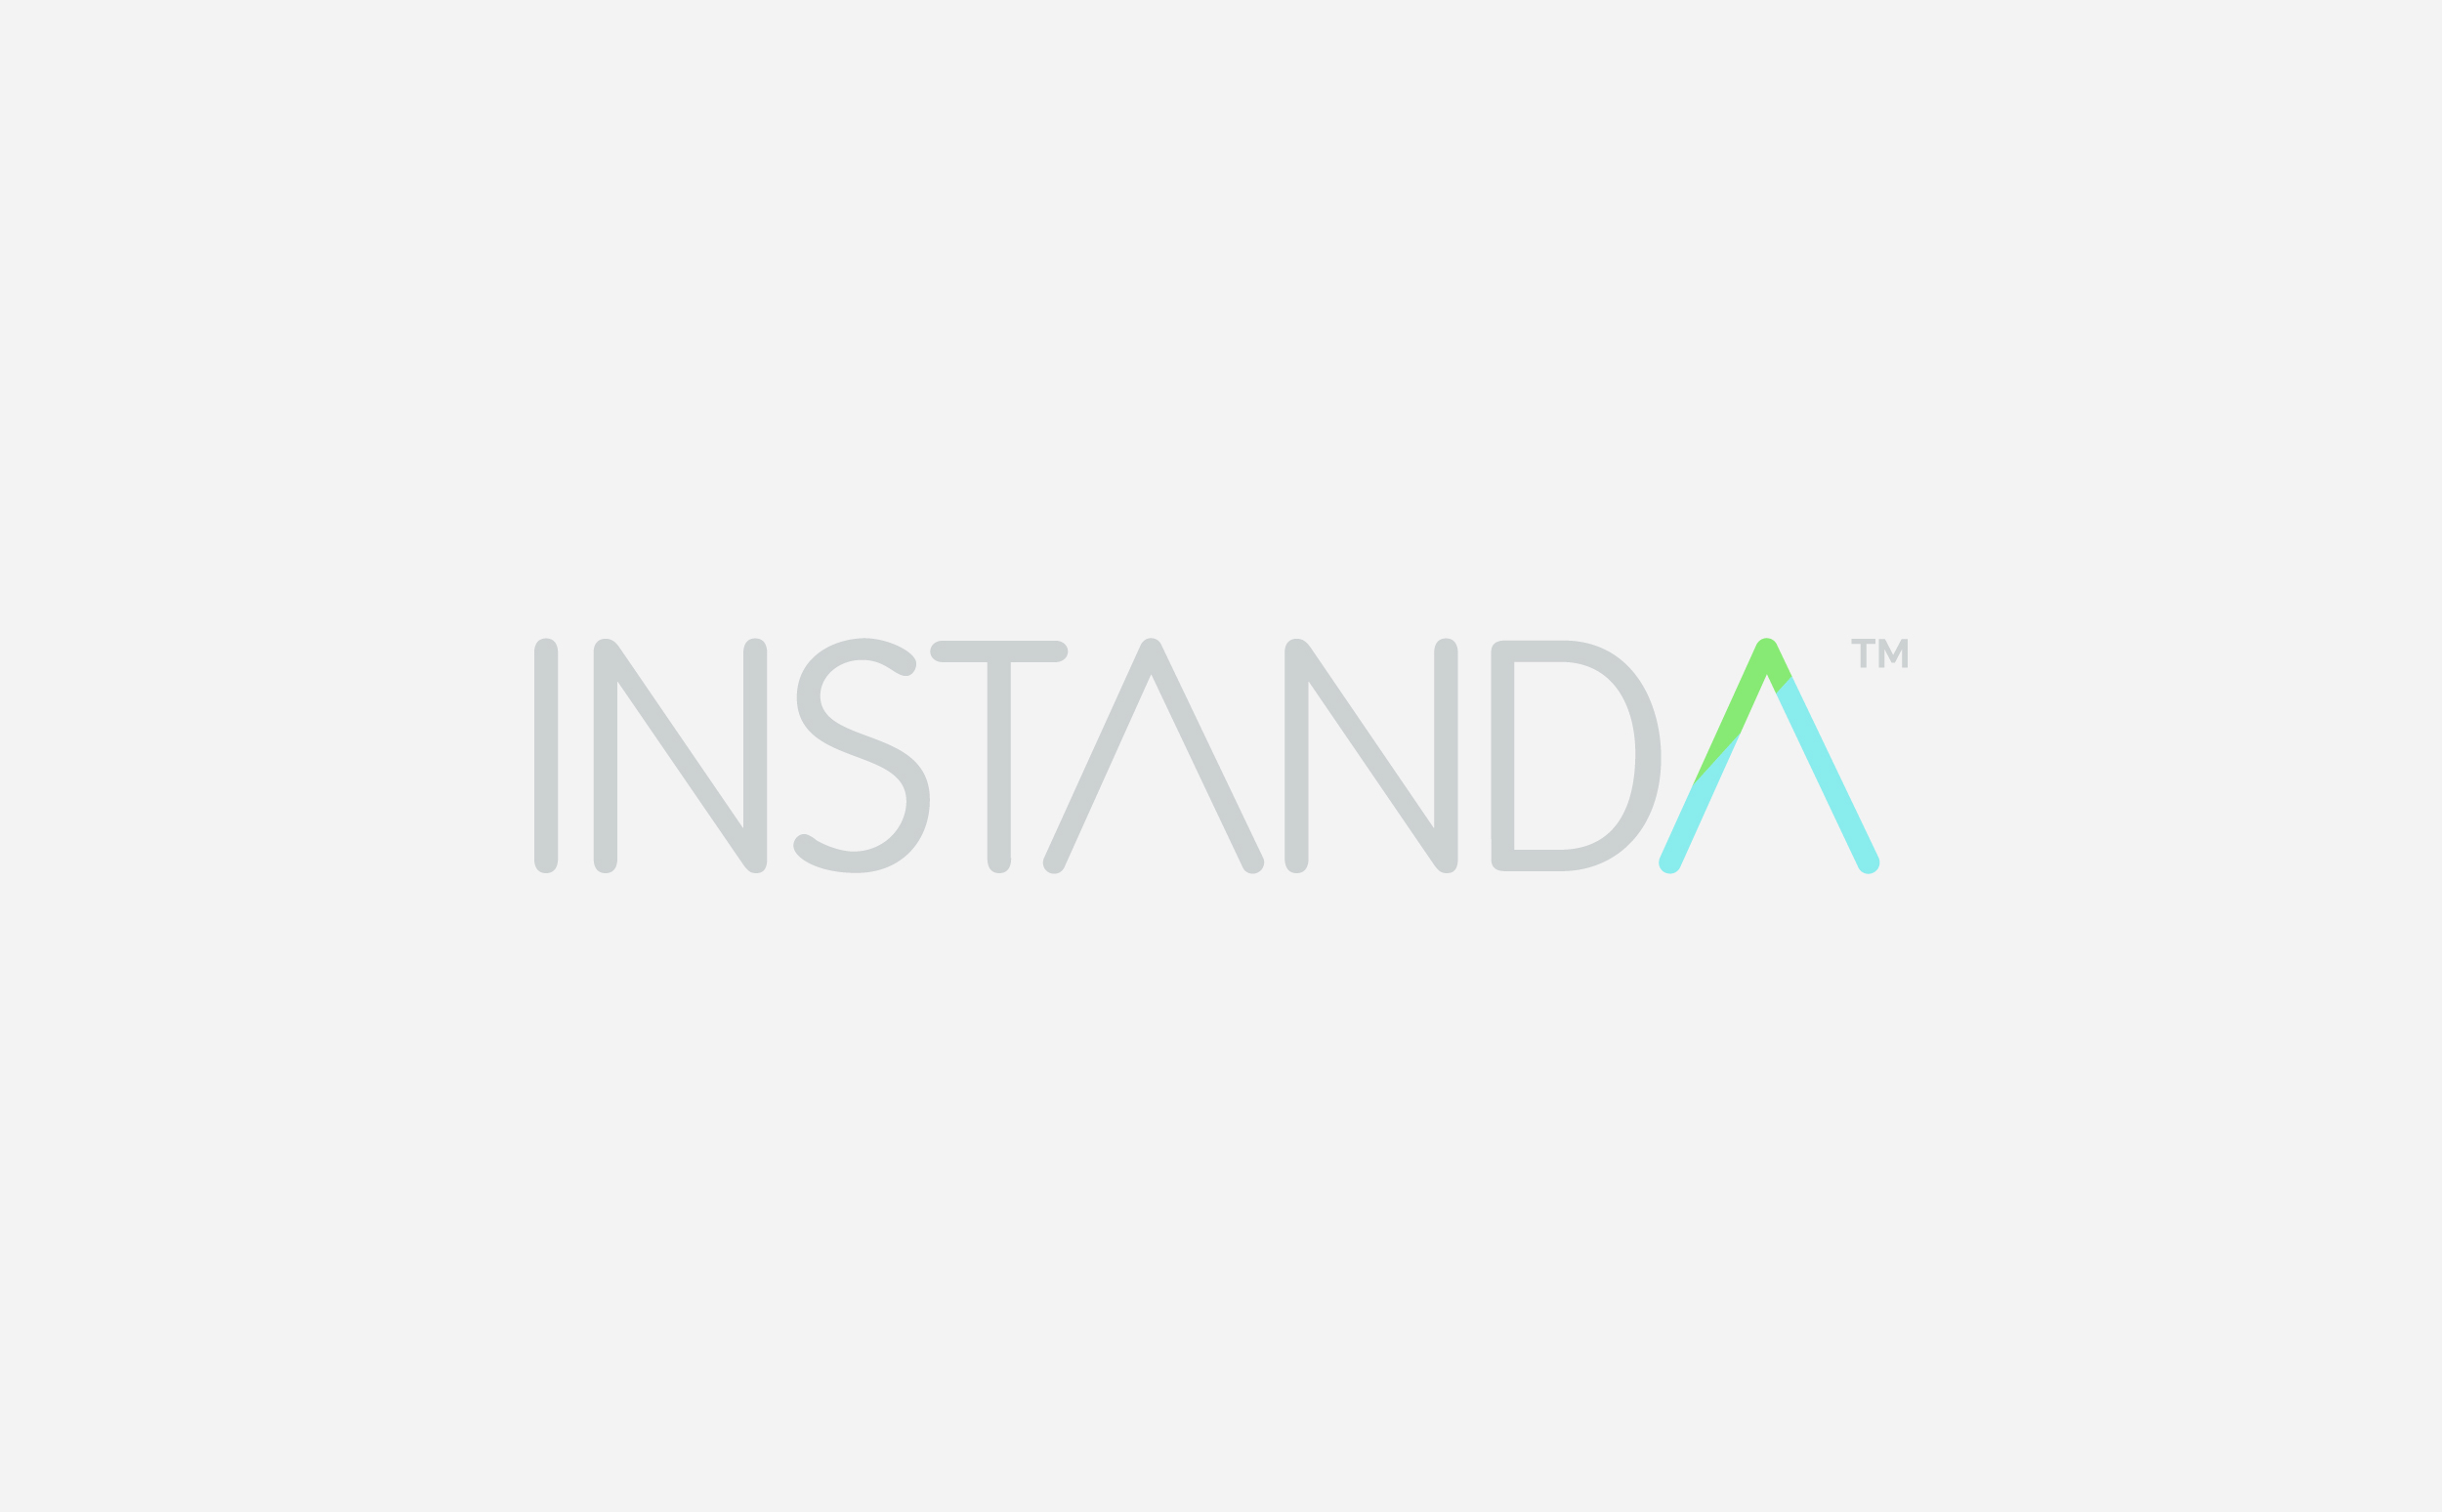 Instanda-Logo_Artwork-01